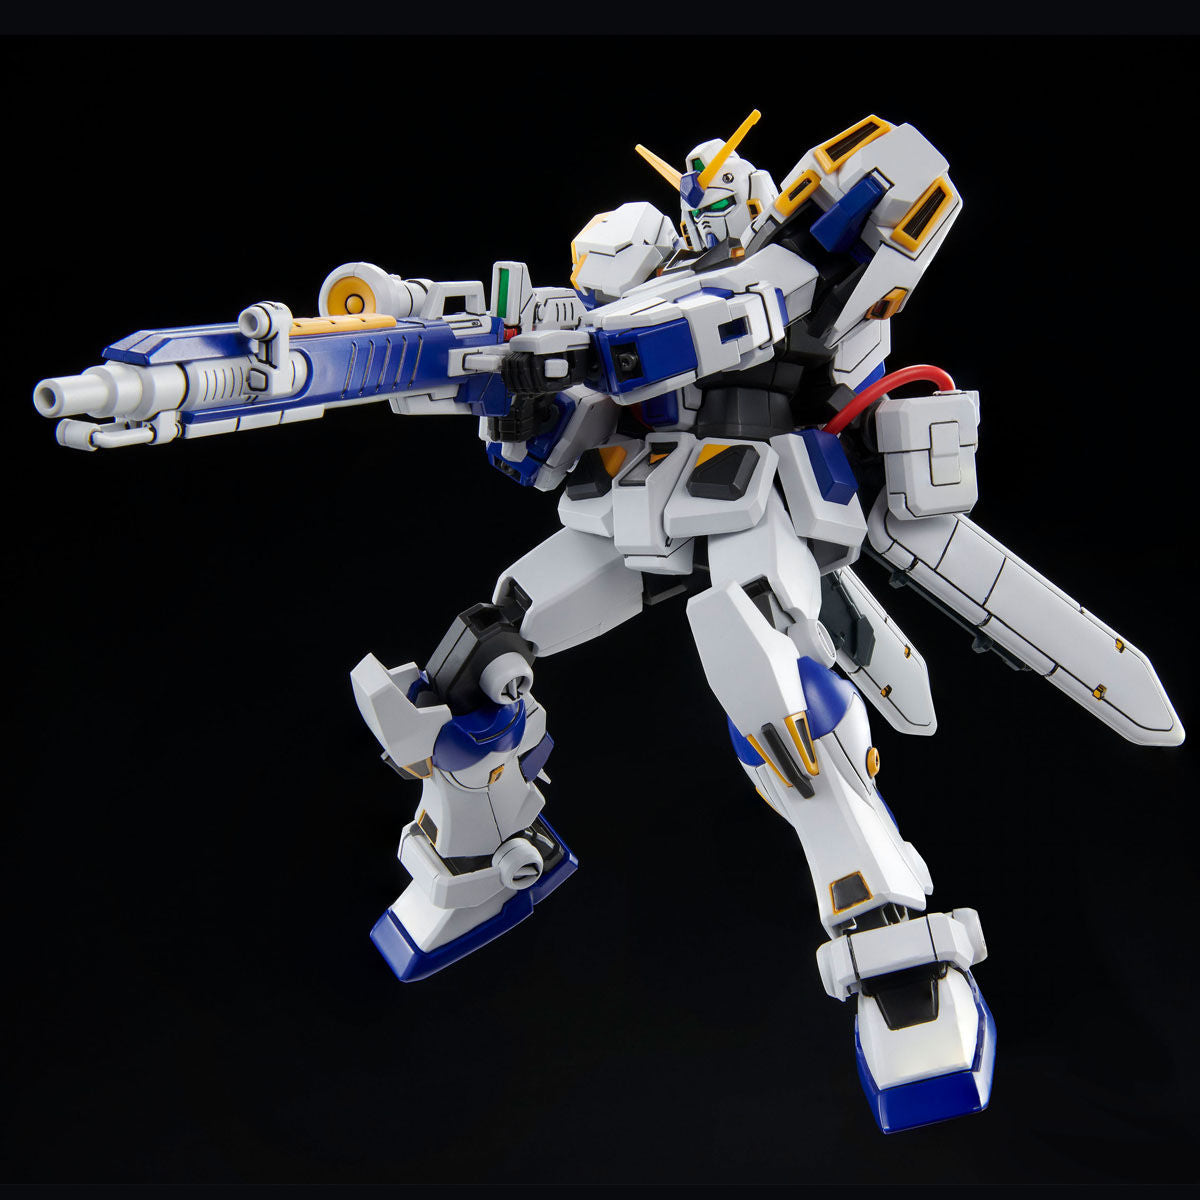 "P-BANDAI: HGUC 1/144 RX-78-4 GUNDAM UNIT 4 ""G04"" [End of JULY 2020]"